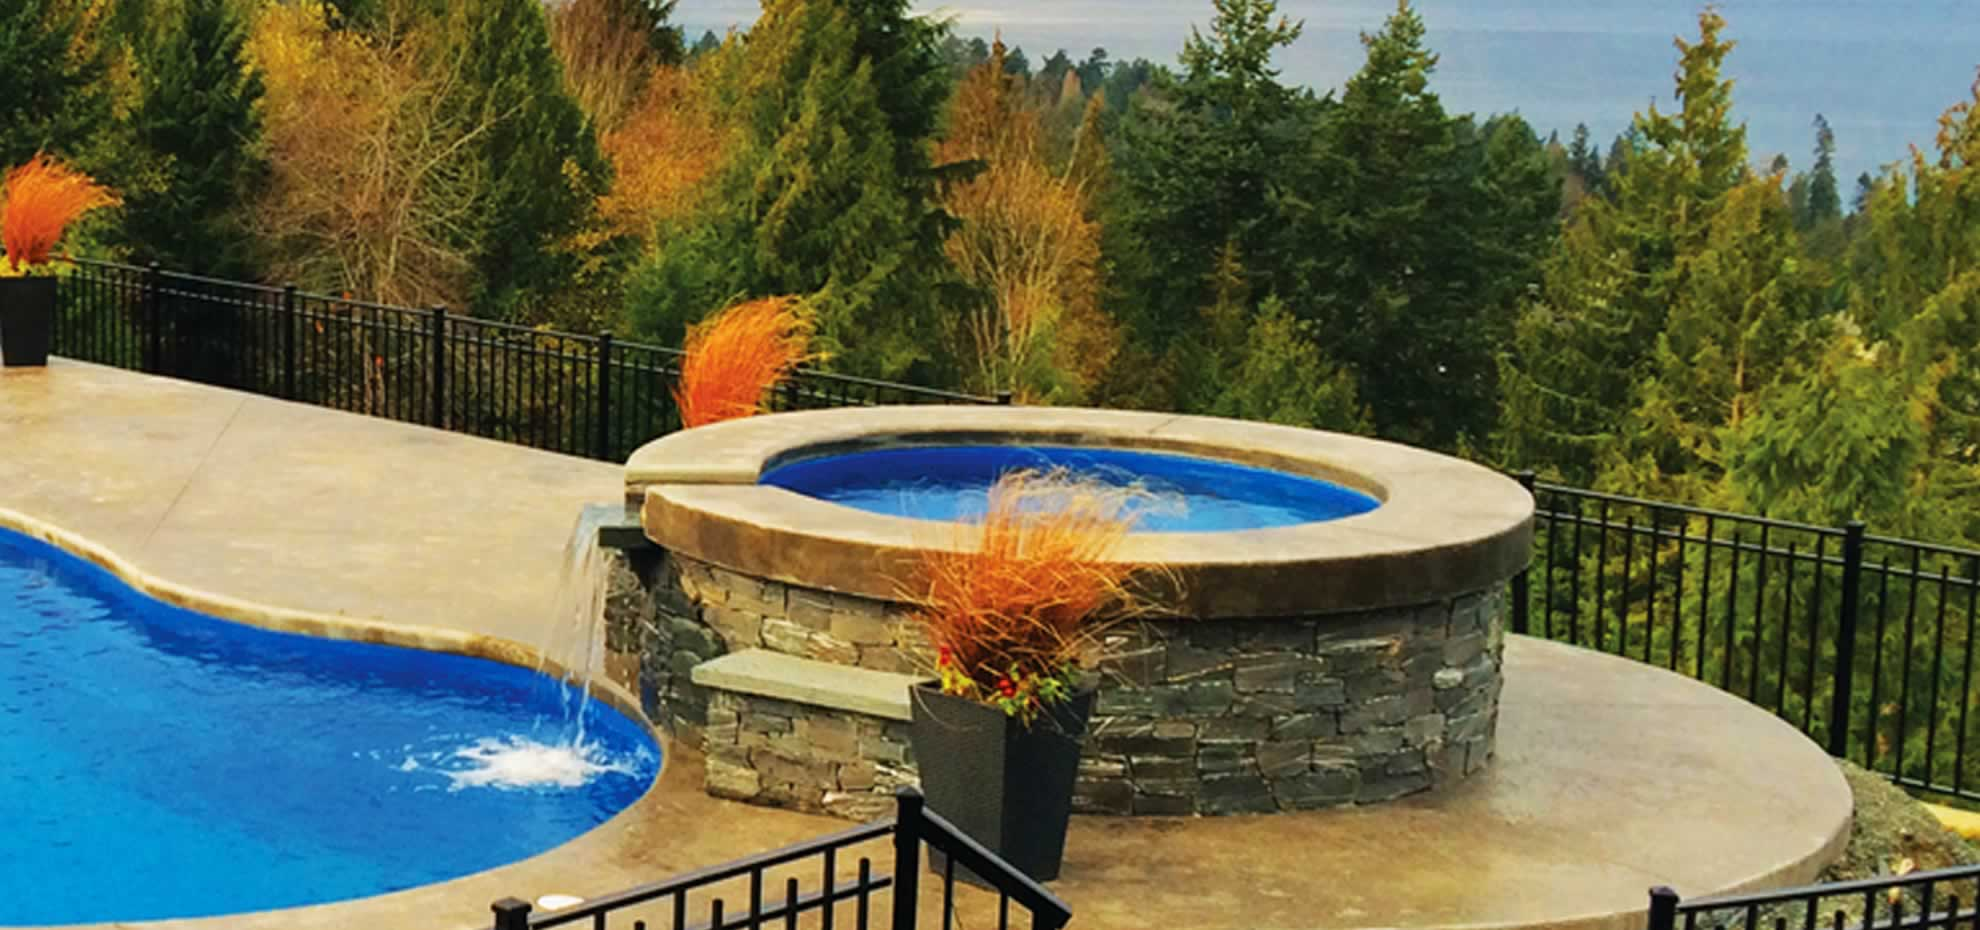 Elevated Circular Fibreglass pool with water feature by Leisure Pools